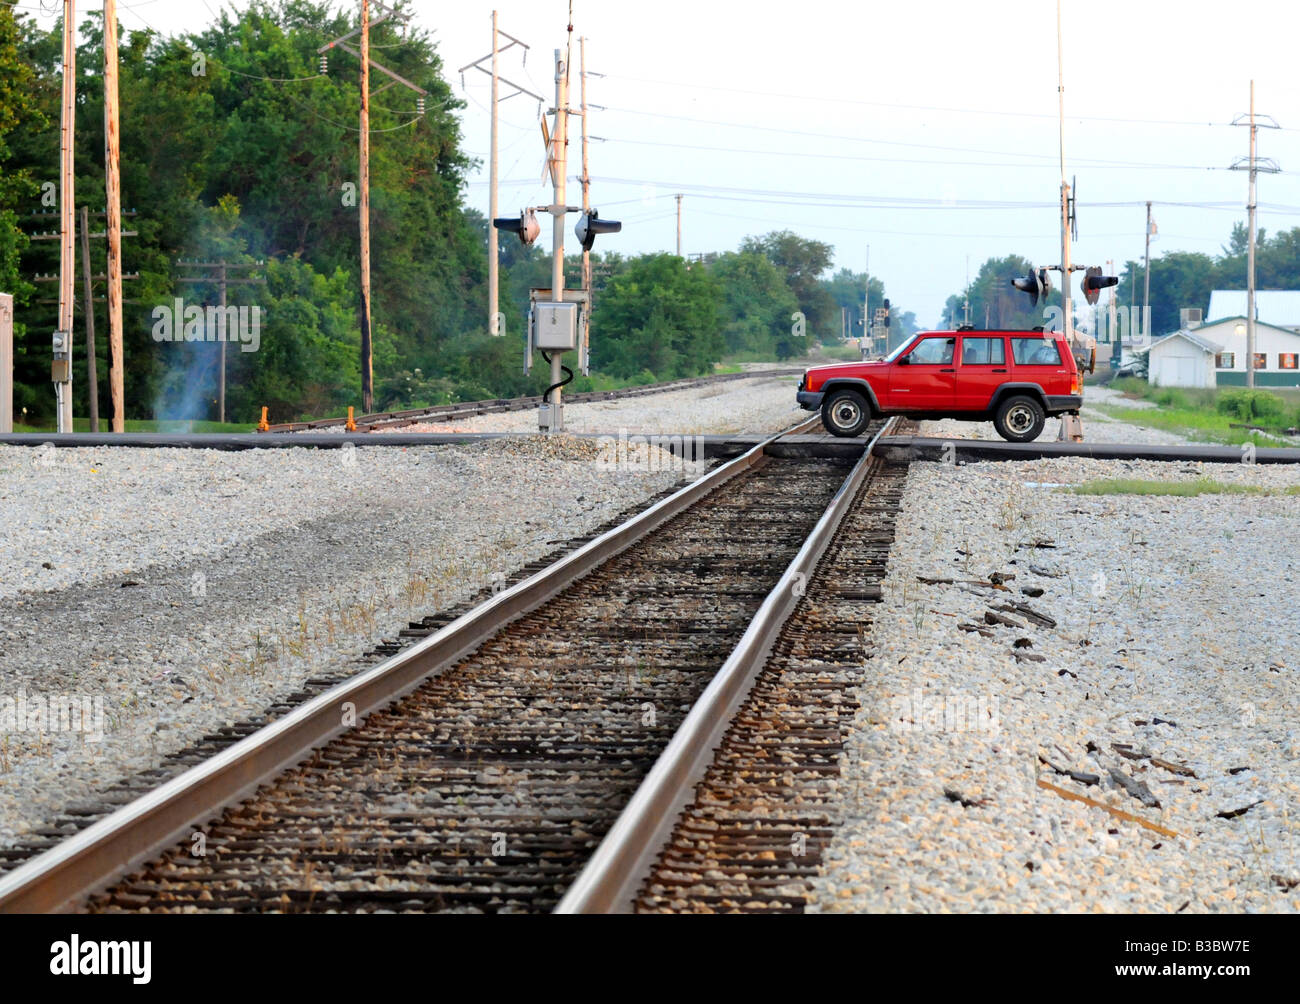 Crossing the railroad tracks safely - Stock Image